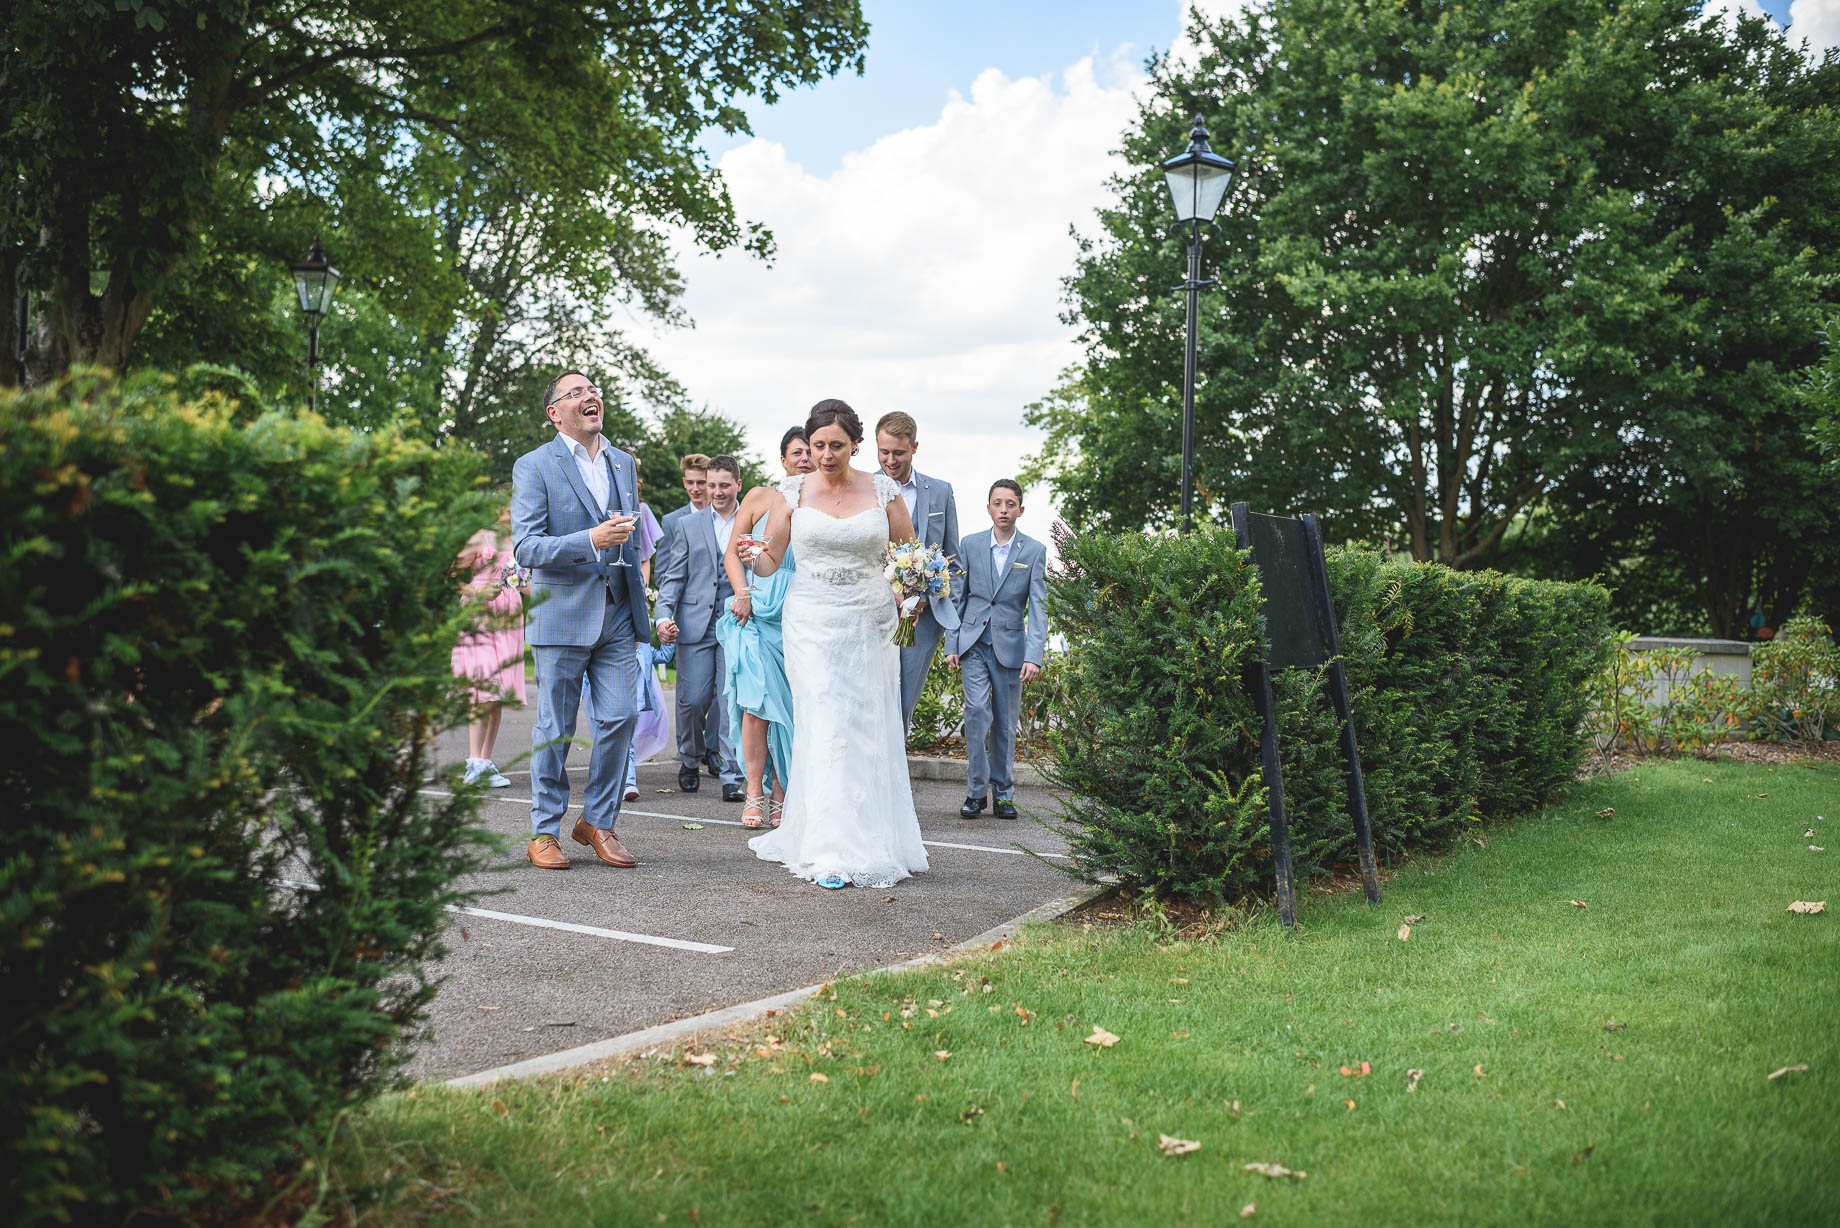 Luton Hoo wedding photography by Guy Collier Photography - Lauren and Gem (81 of 178)